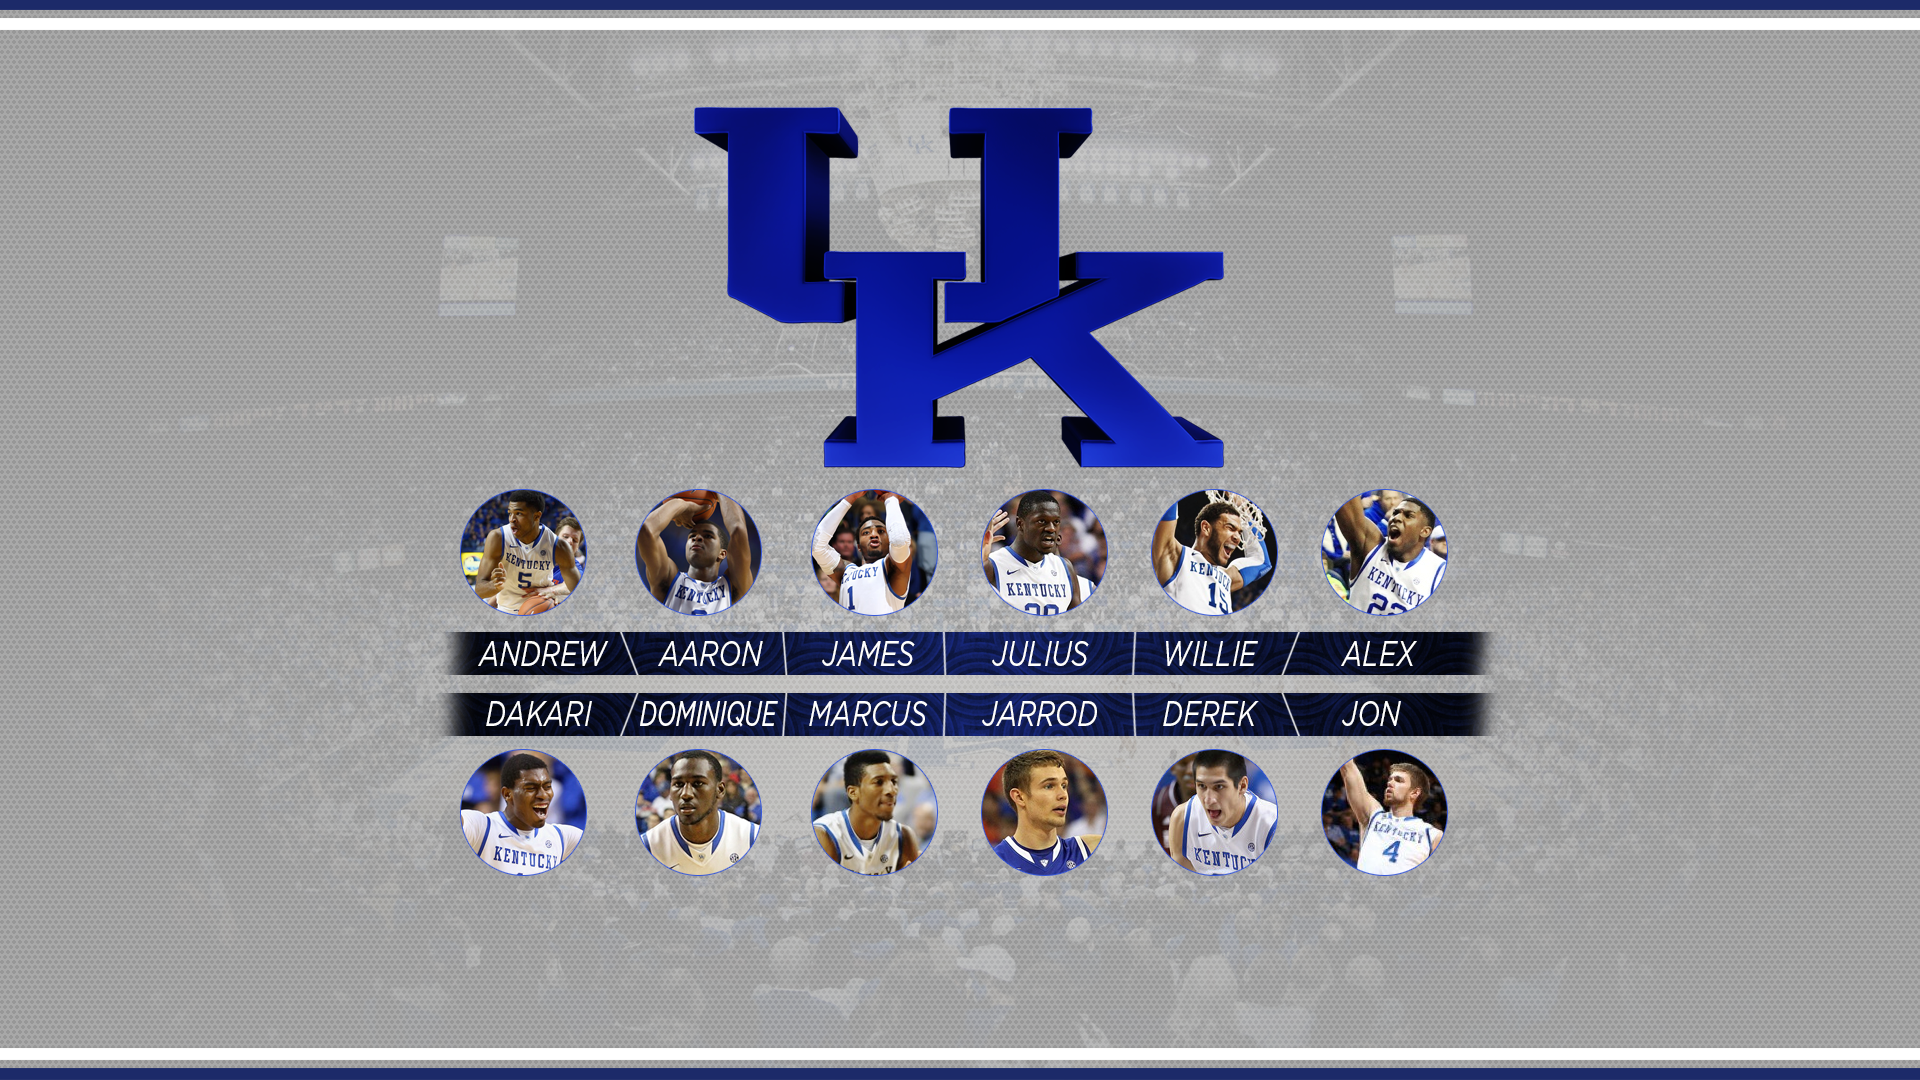 2014 kentucky wildcats desktop wallpaper by branlyle fan art wallpaper 1920x1080